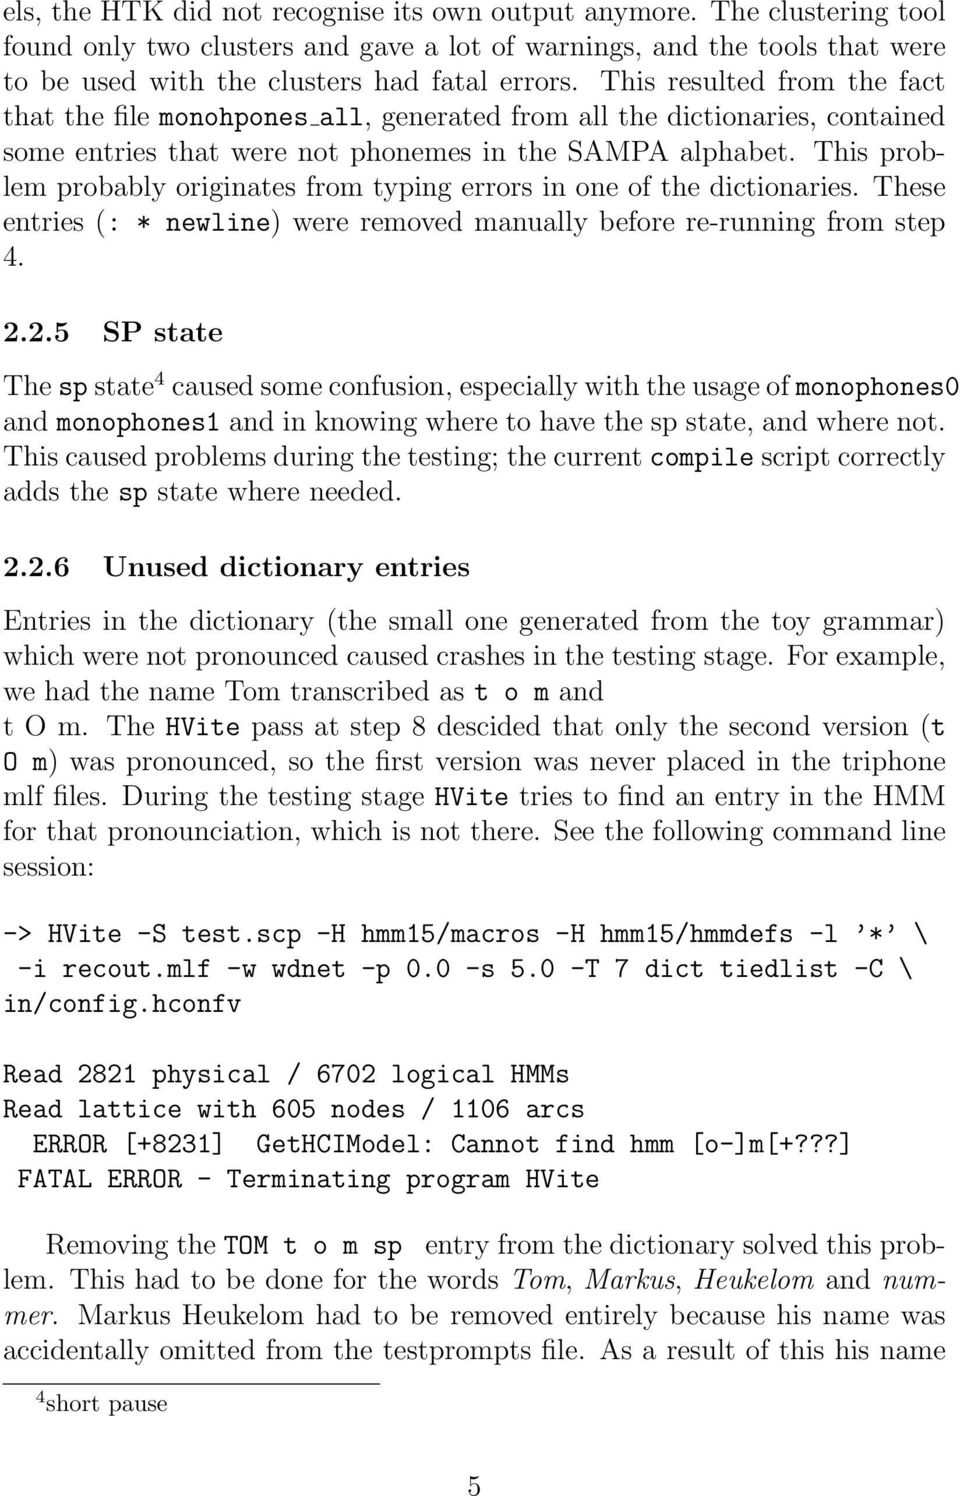 This problem probably originates from typing errors in one of the dictionaries. These entries (: * newline) were removed manually before re-running from step 4. 2.